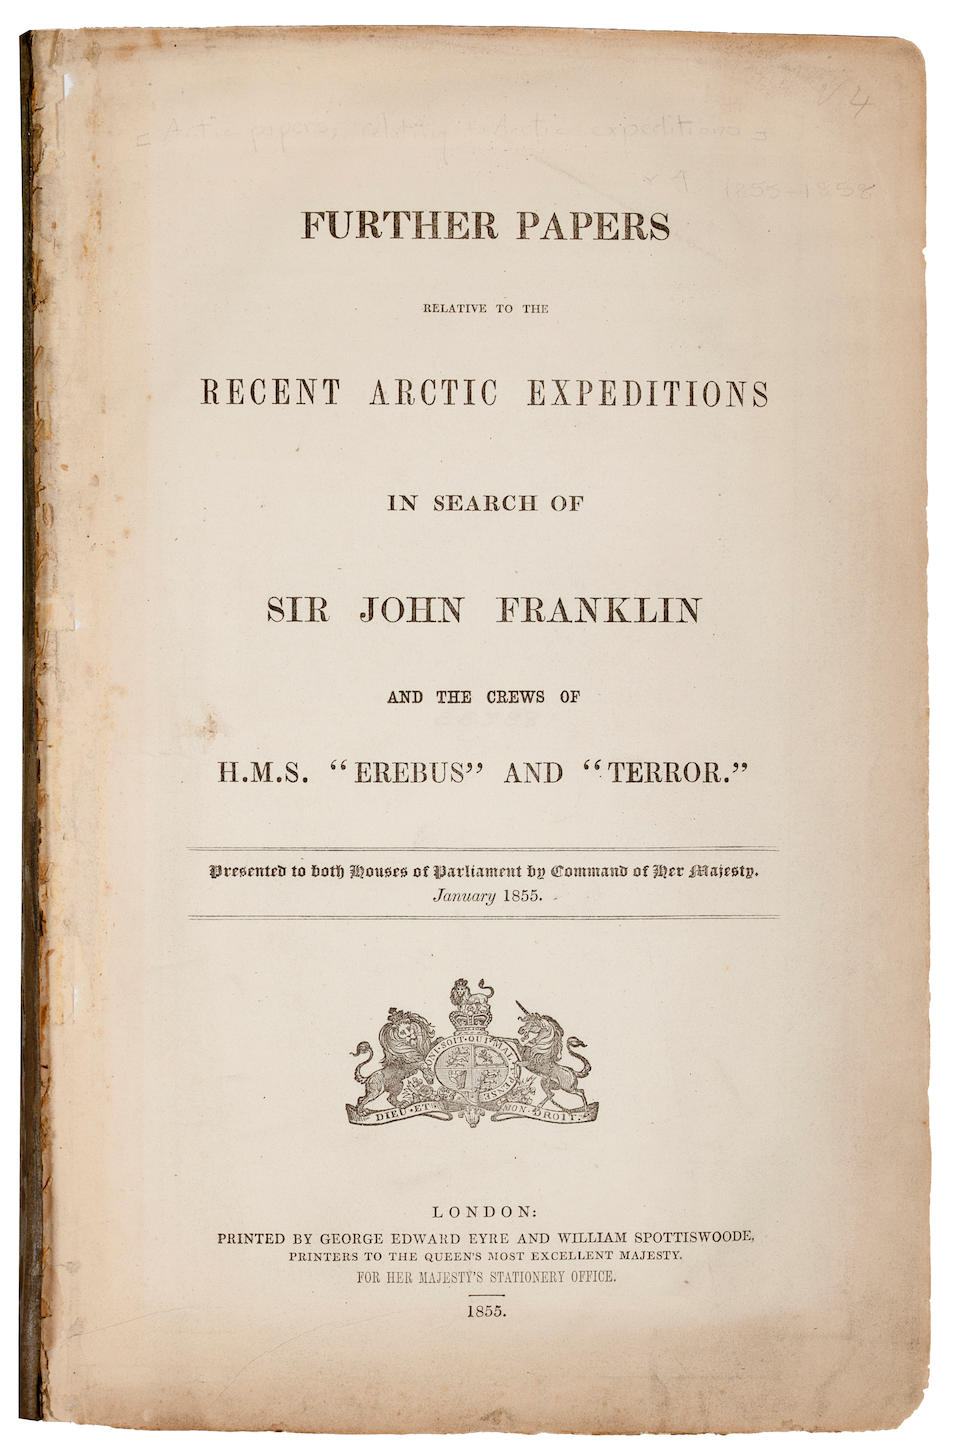 ARCTIC BLUE BOOKS. Extensive collection of 19th-century British Parliamentary papers relating to Arctic exploration.